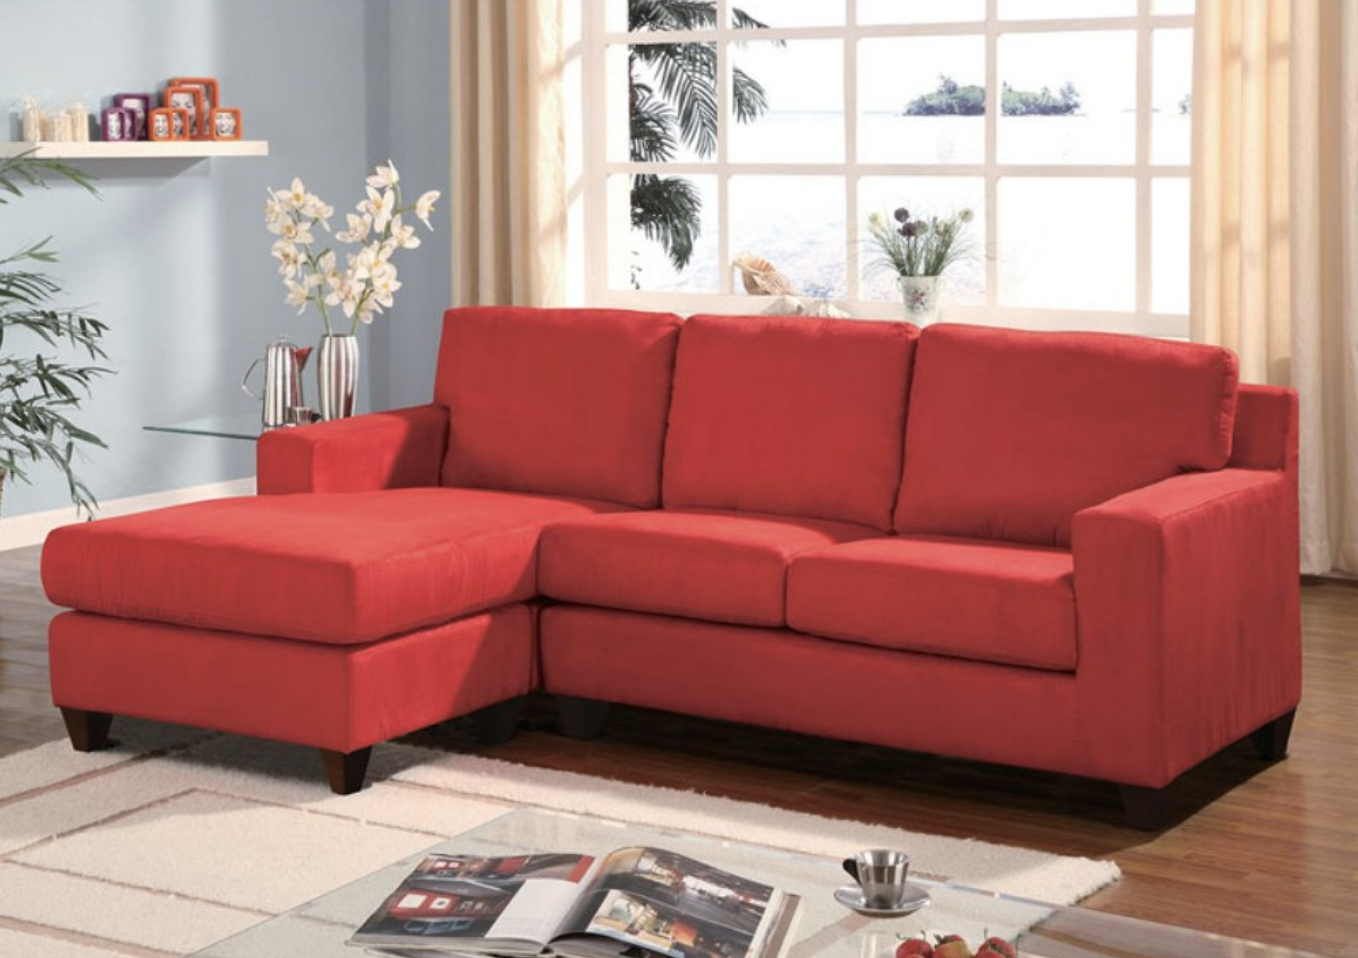 75 Modern Sectional Sofas For Small Spaces (2018) Inside Well Liked 100X80 Sectional Sofas (View 12 of 15)